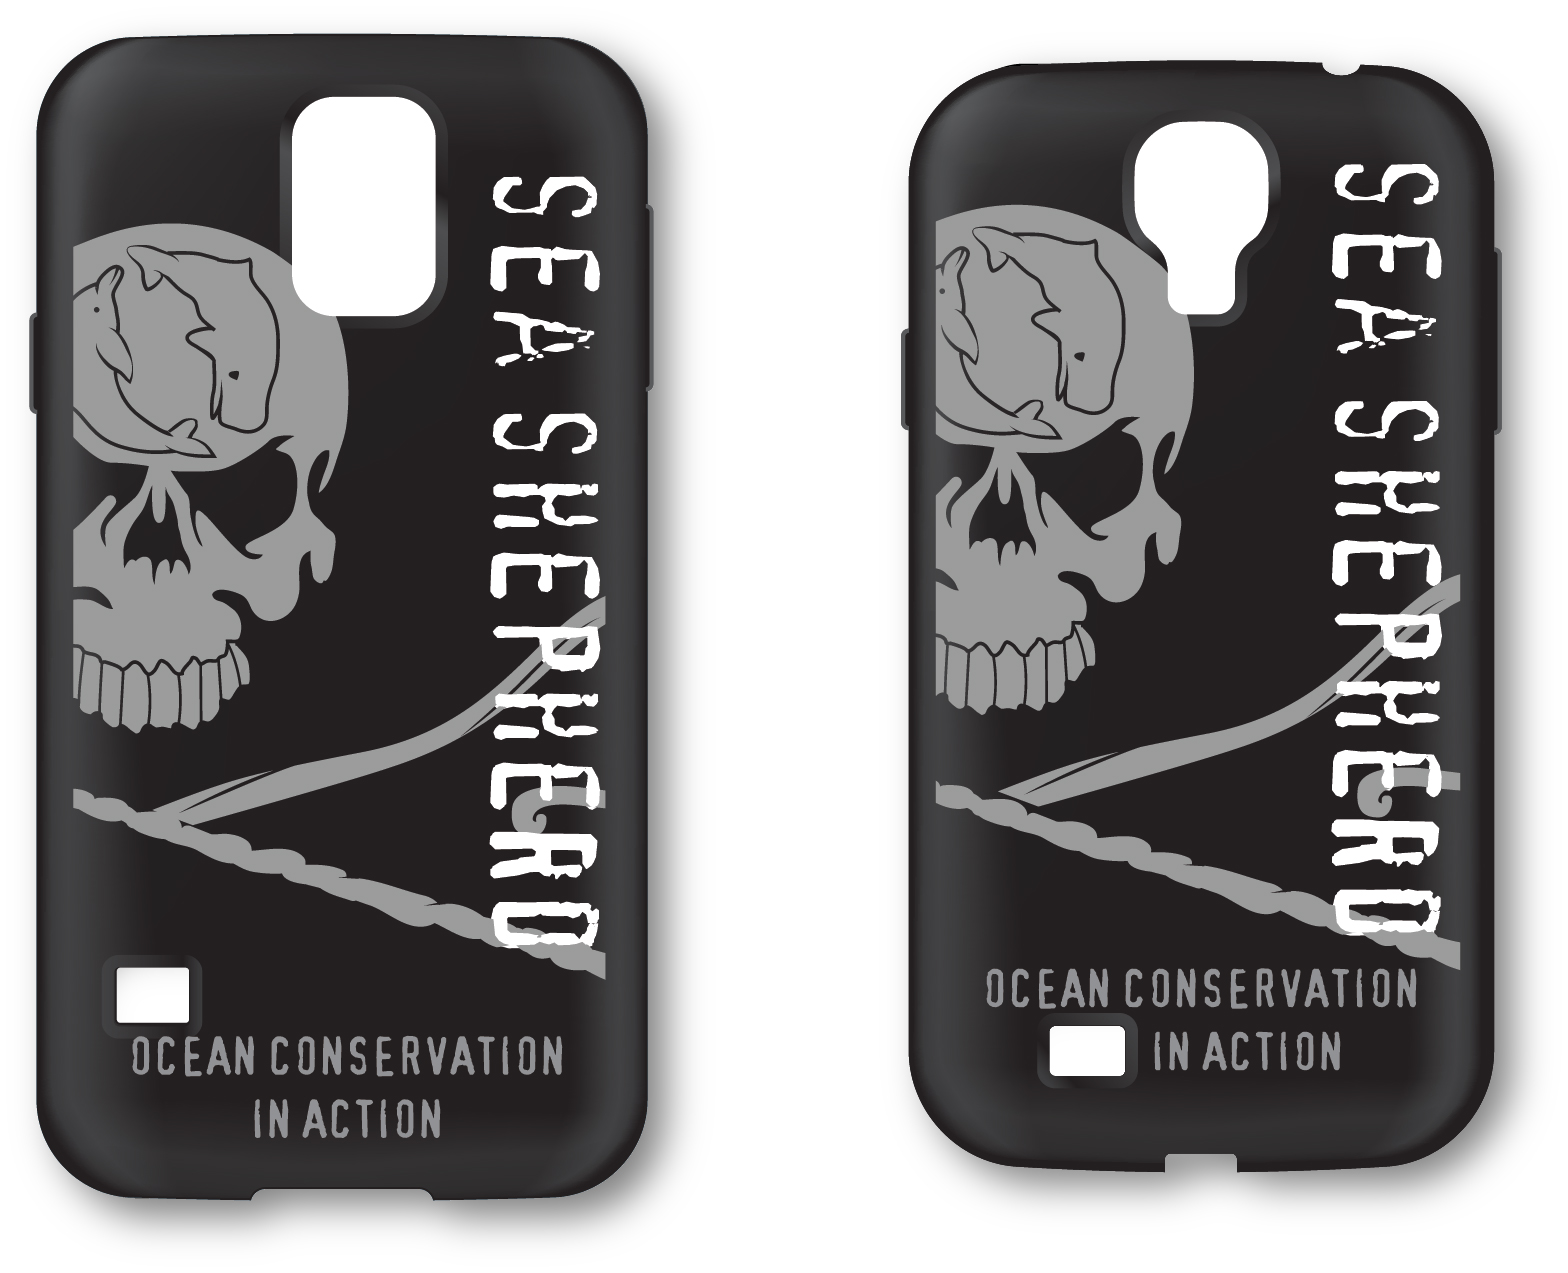 Sea Shepherd Samsung Galaxy S Case